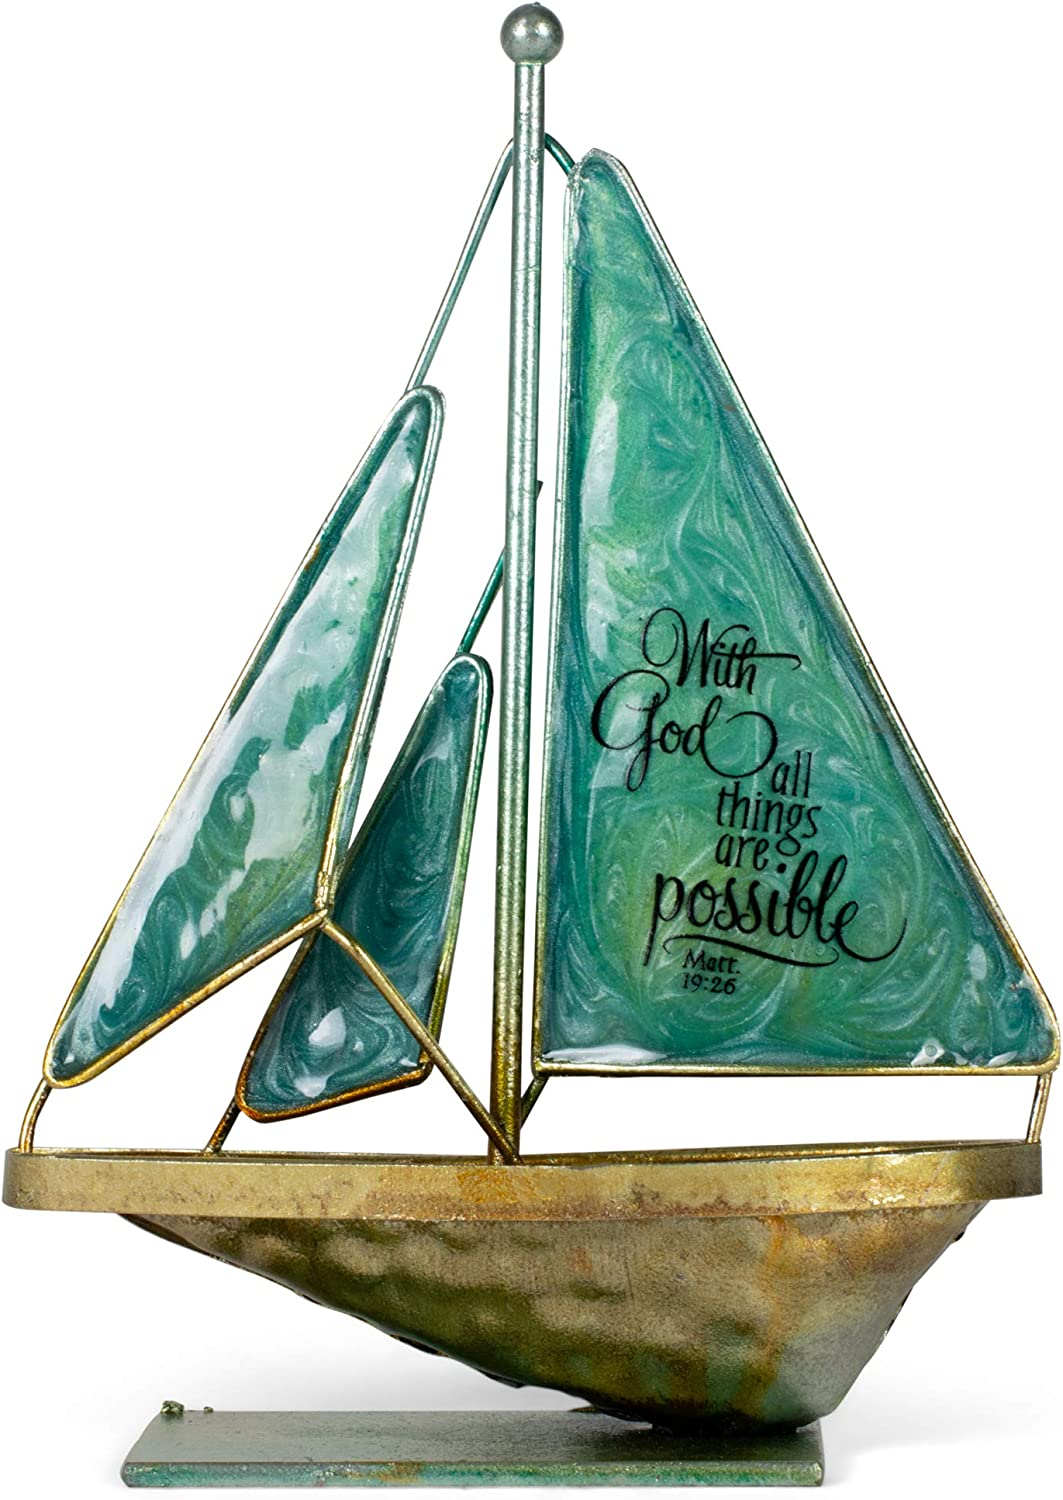 Dicksons with God All Things Possible Matthew 19:26 6 x 5 Metal Table Top Sailboat Figurine Decoration